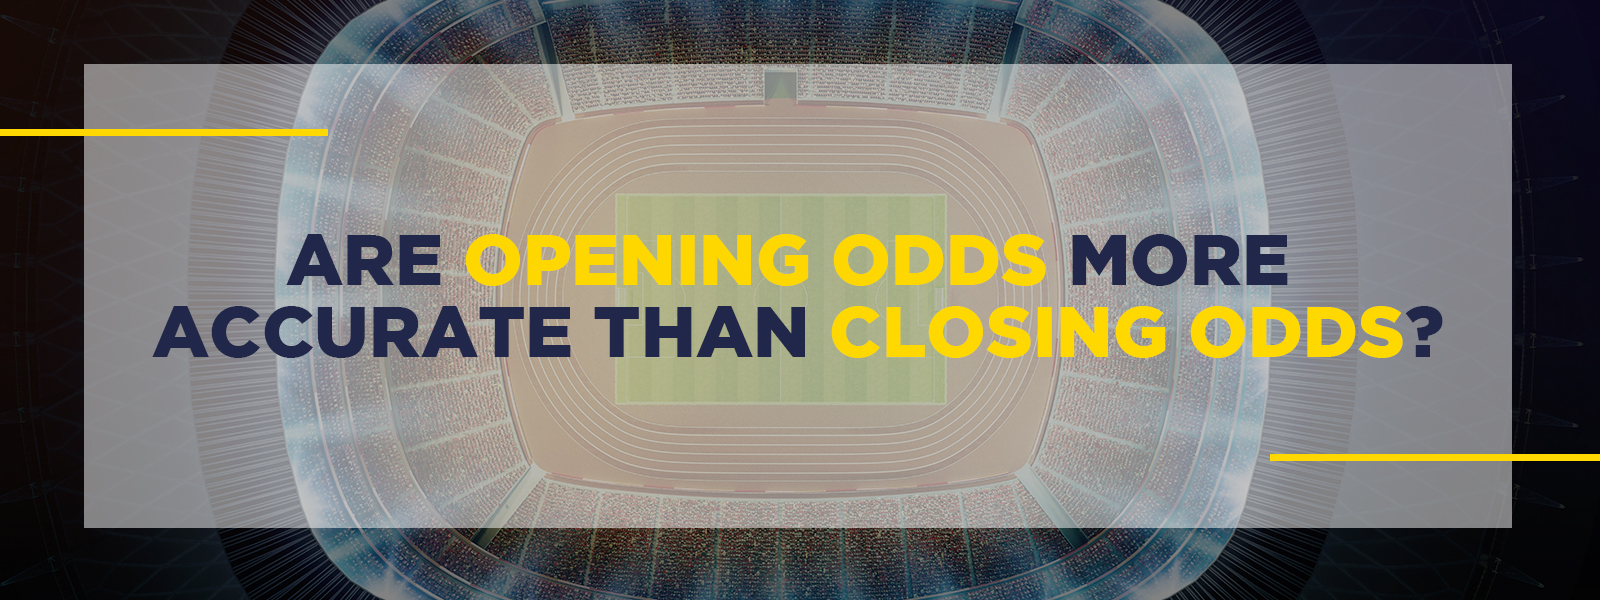 Are Opening Odds More Accurate Than Closing Odds?